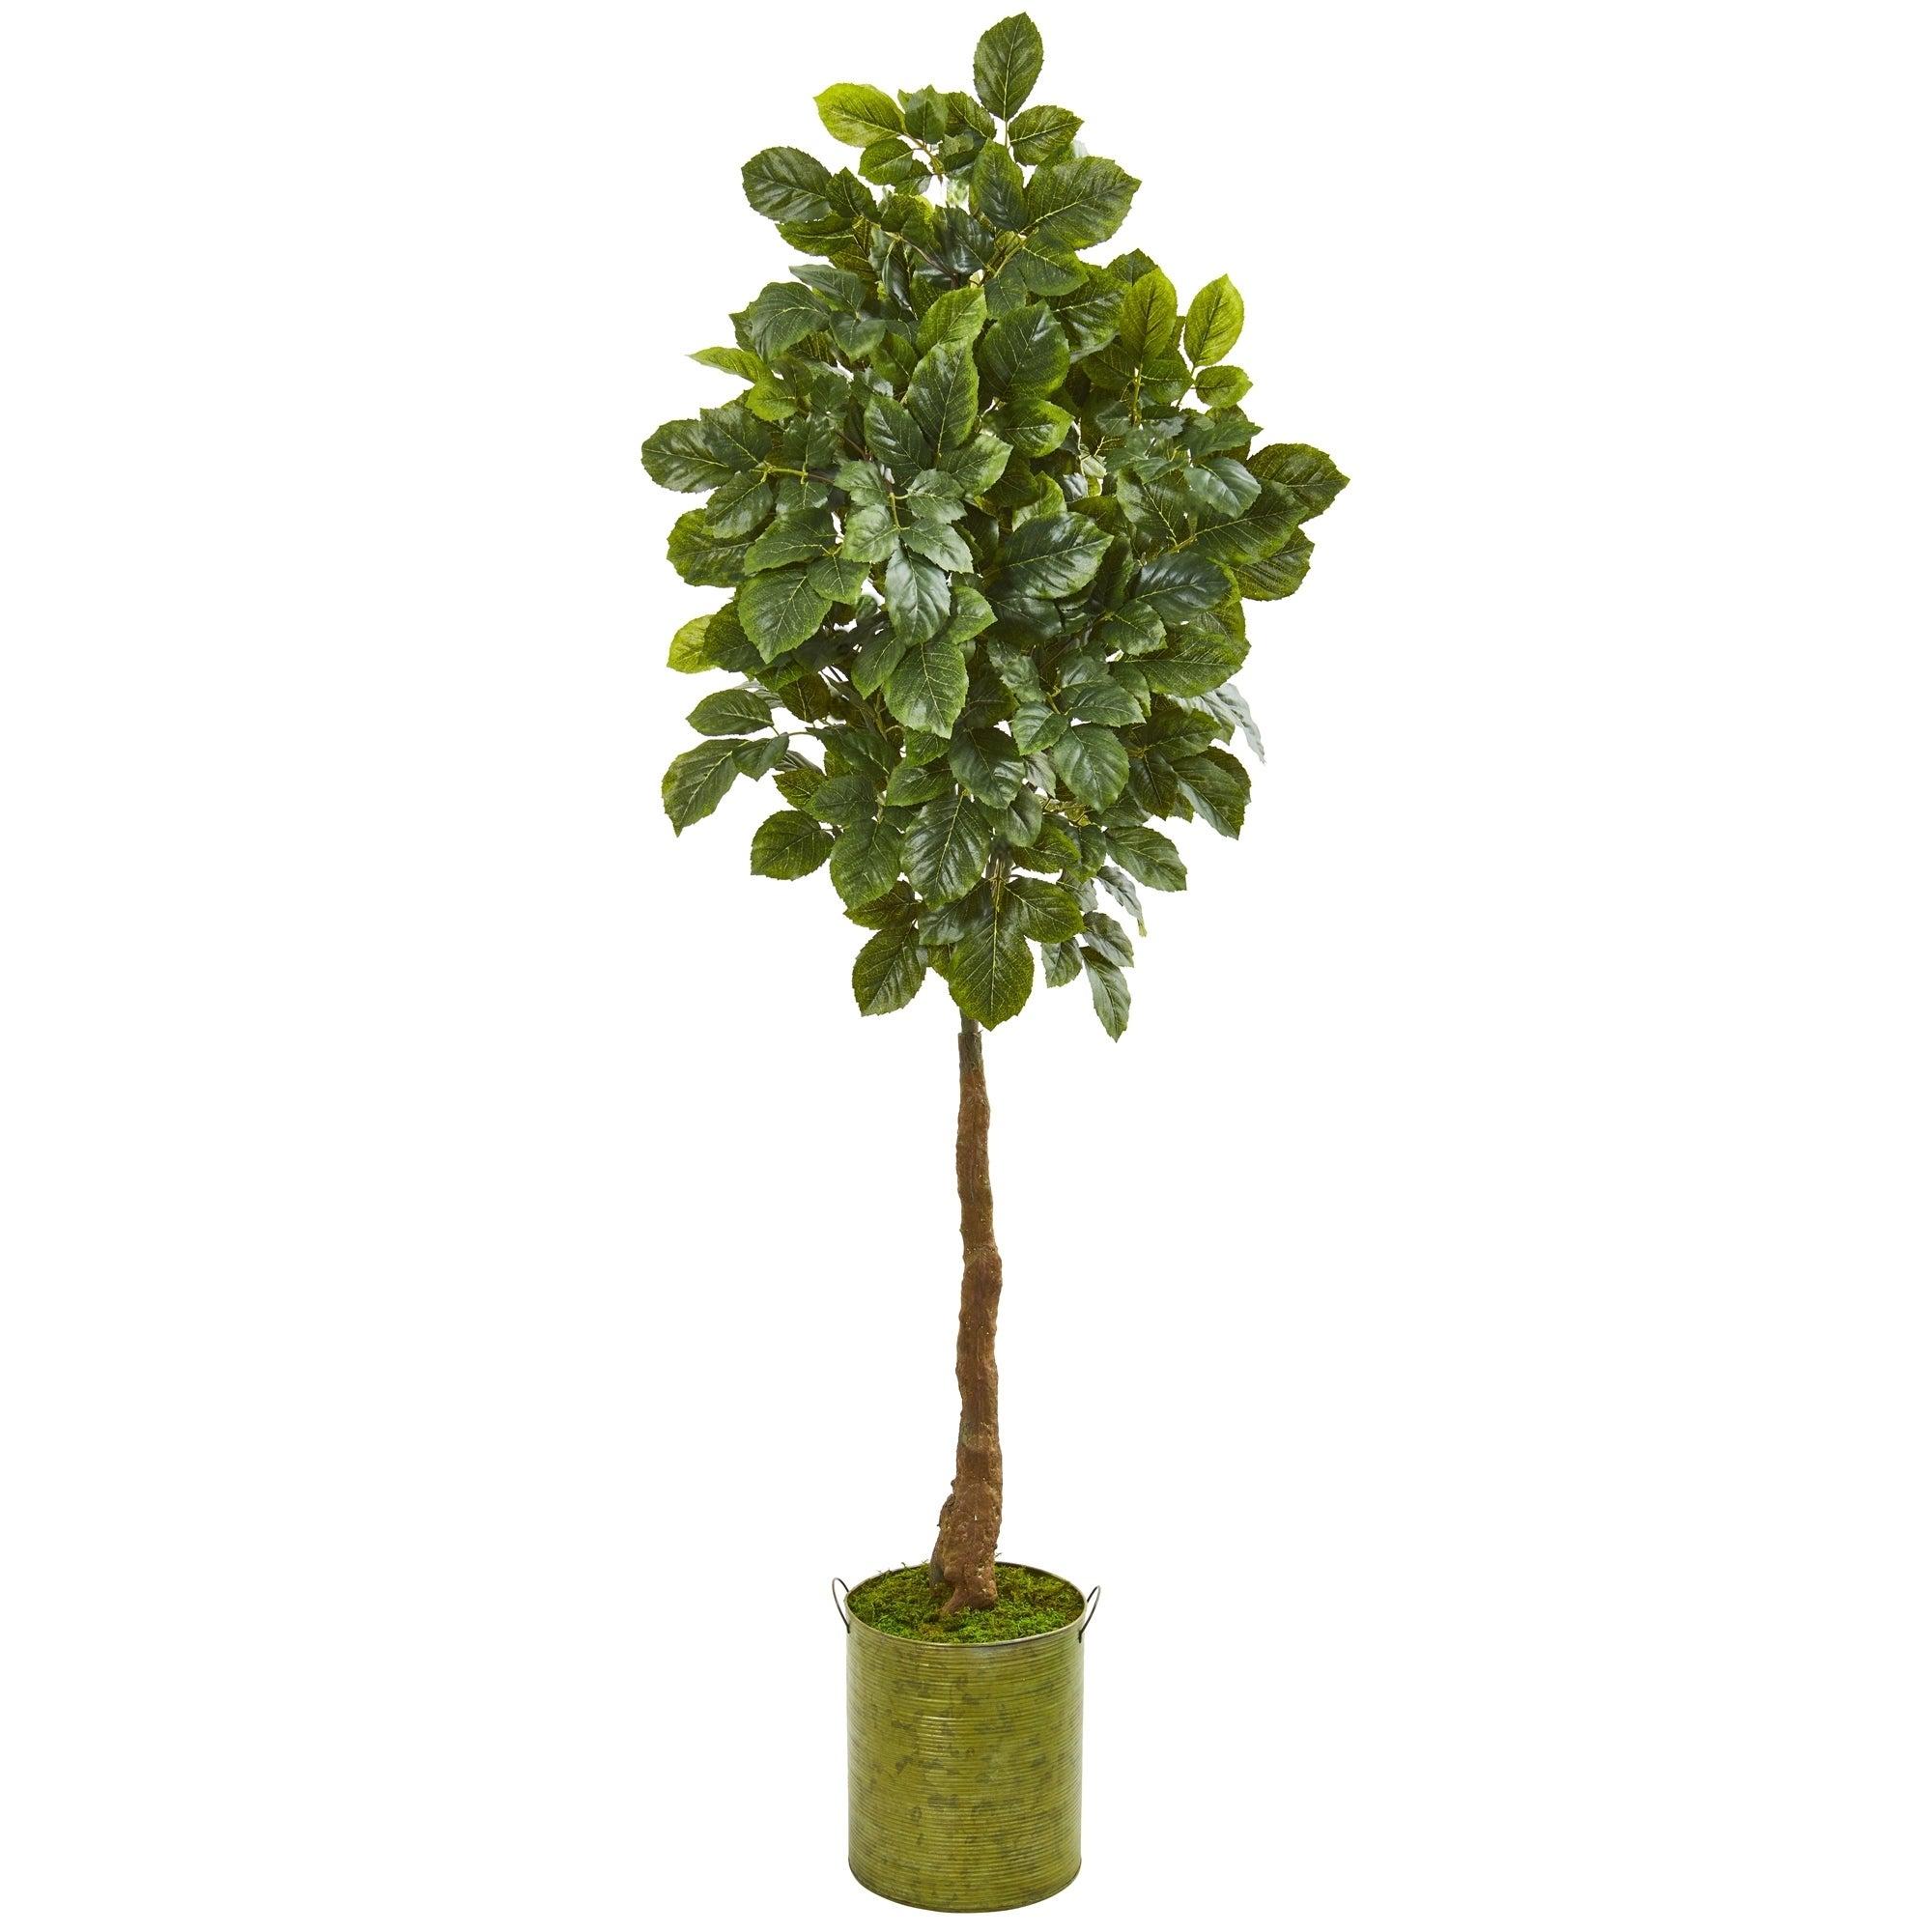 69 Beech Leaf Artificial Tree in Metal Planter